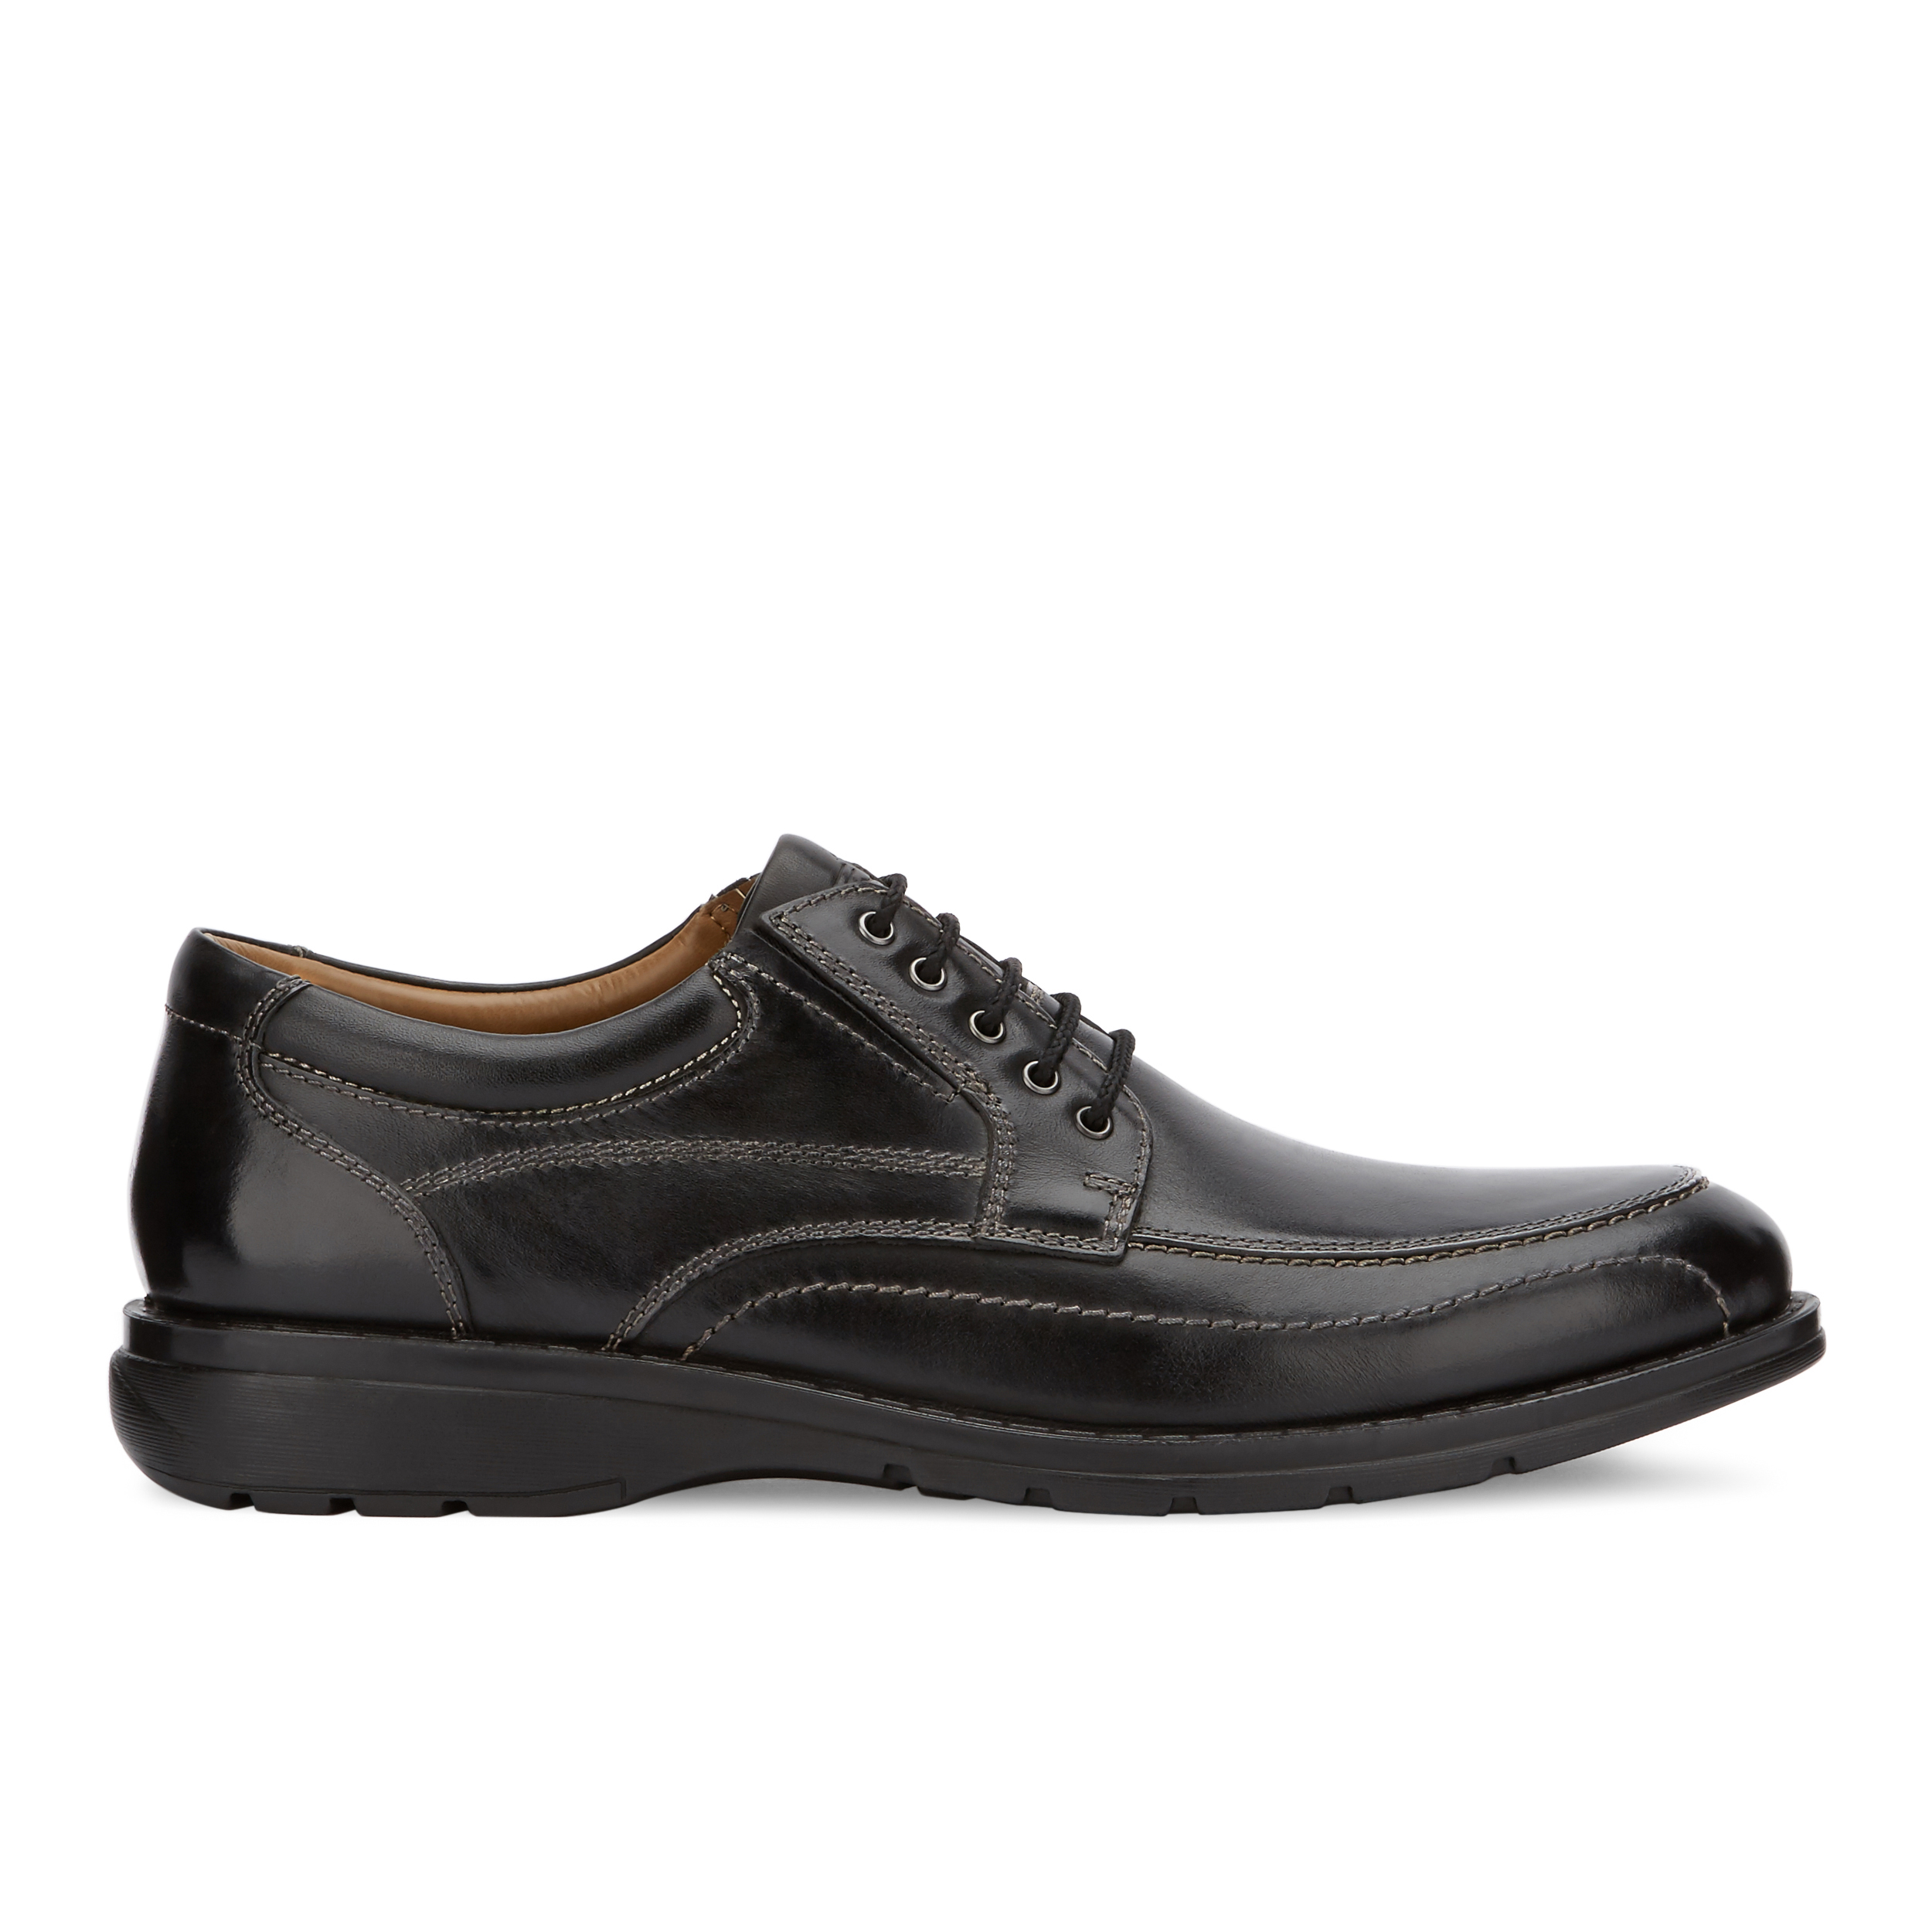 Dockers-Mens-Barker-Genuine-Leather-Dress-Casual-Lace-up-Comfort-Oxford-Shoe thumbnail 12